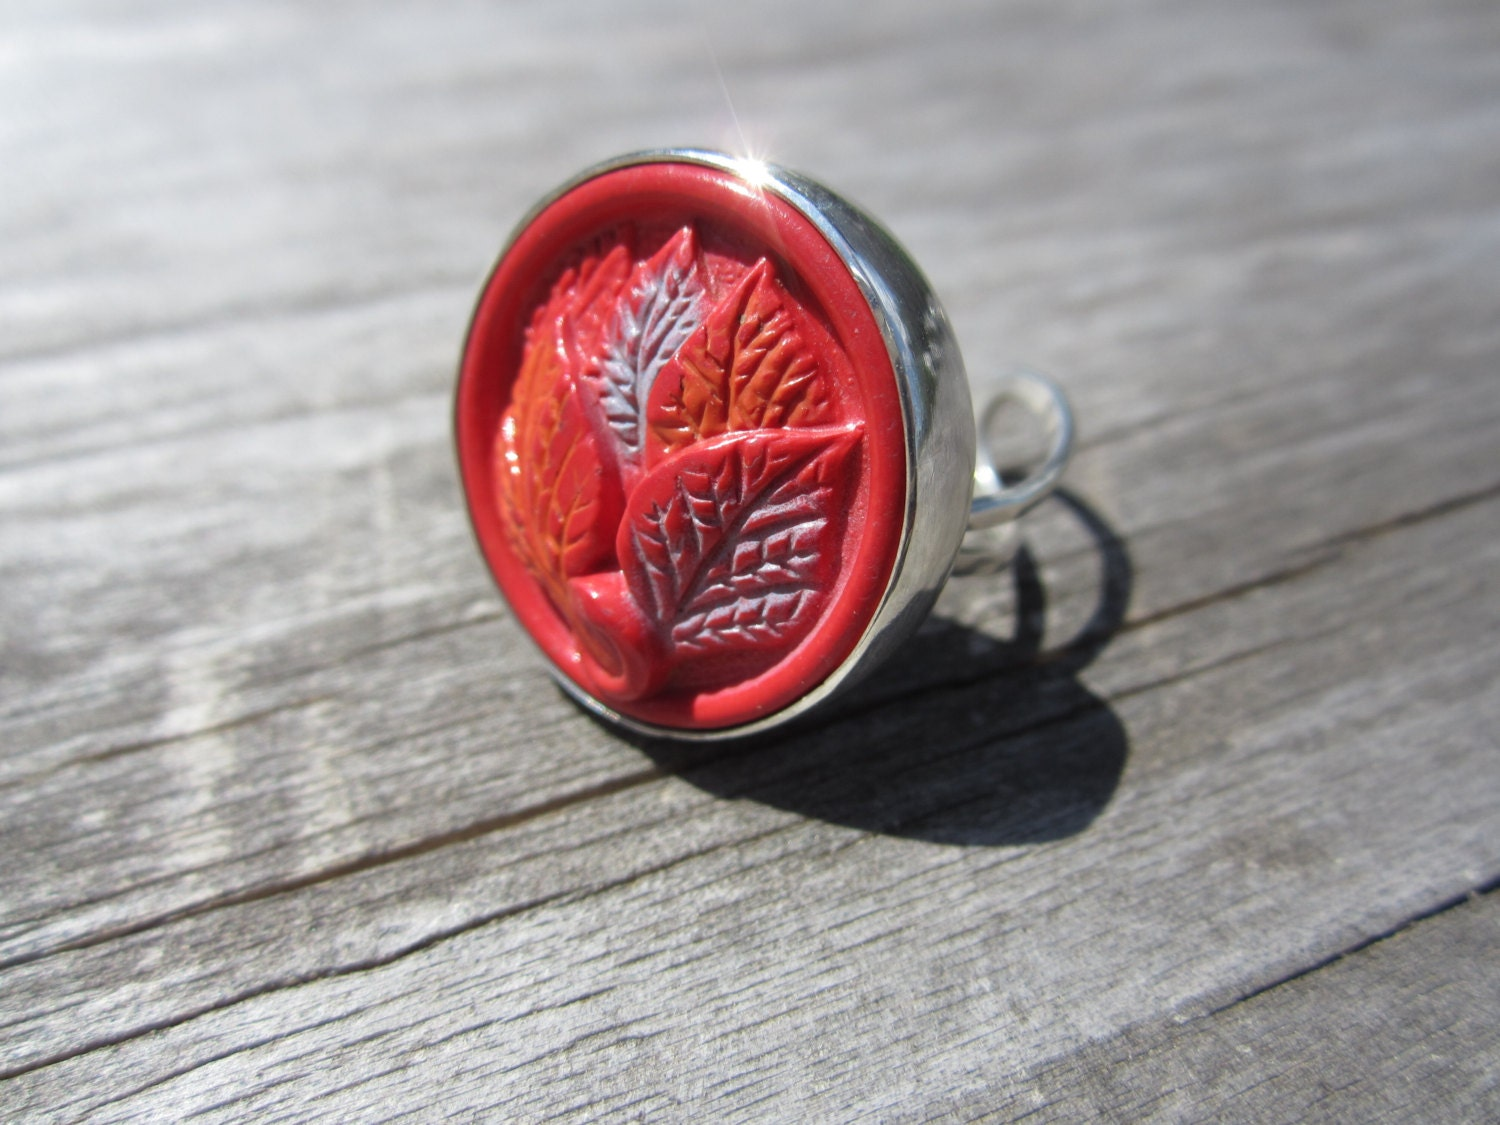 Eco Friendly Vintage Button Statement Ring Sterling Silver Hand Fabricated Bezel Set Adjustable One Of A Kind Red Orange Light Blue Leaves - MadMeadowMetals